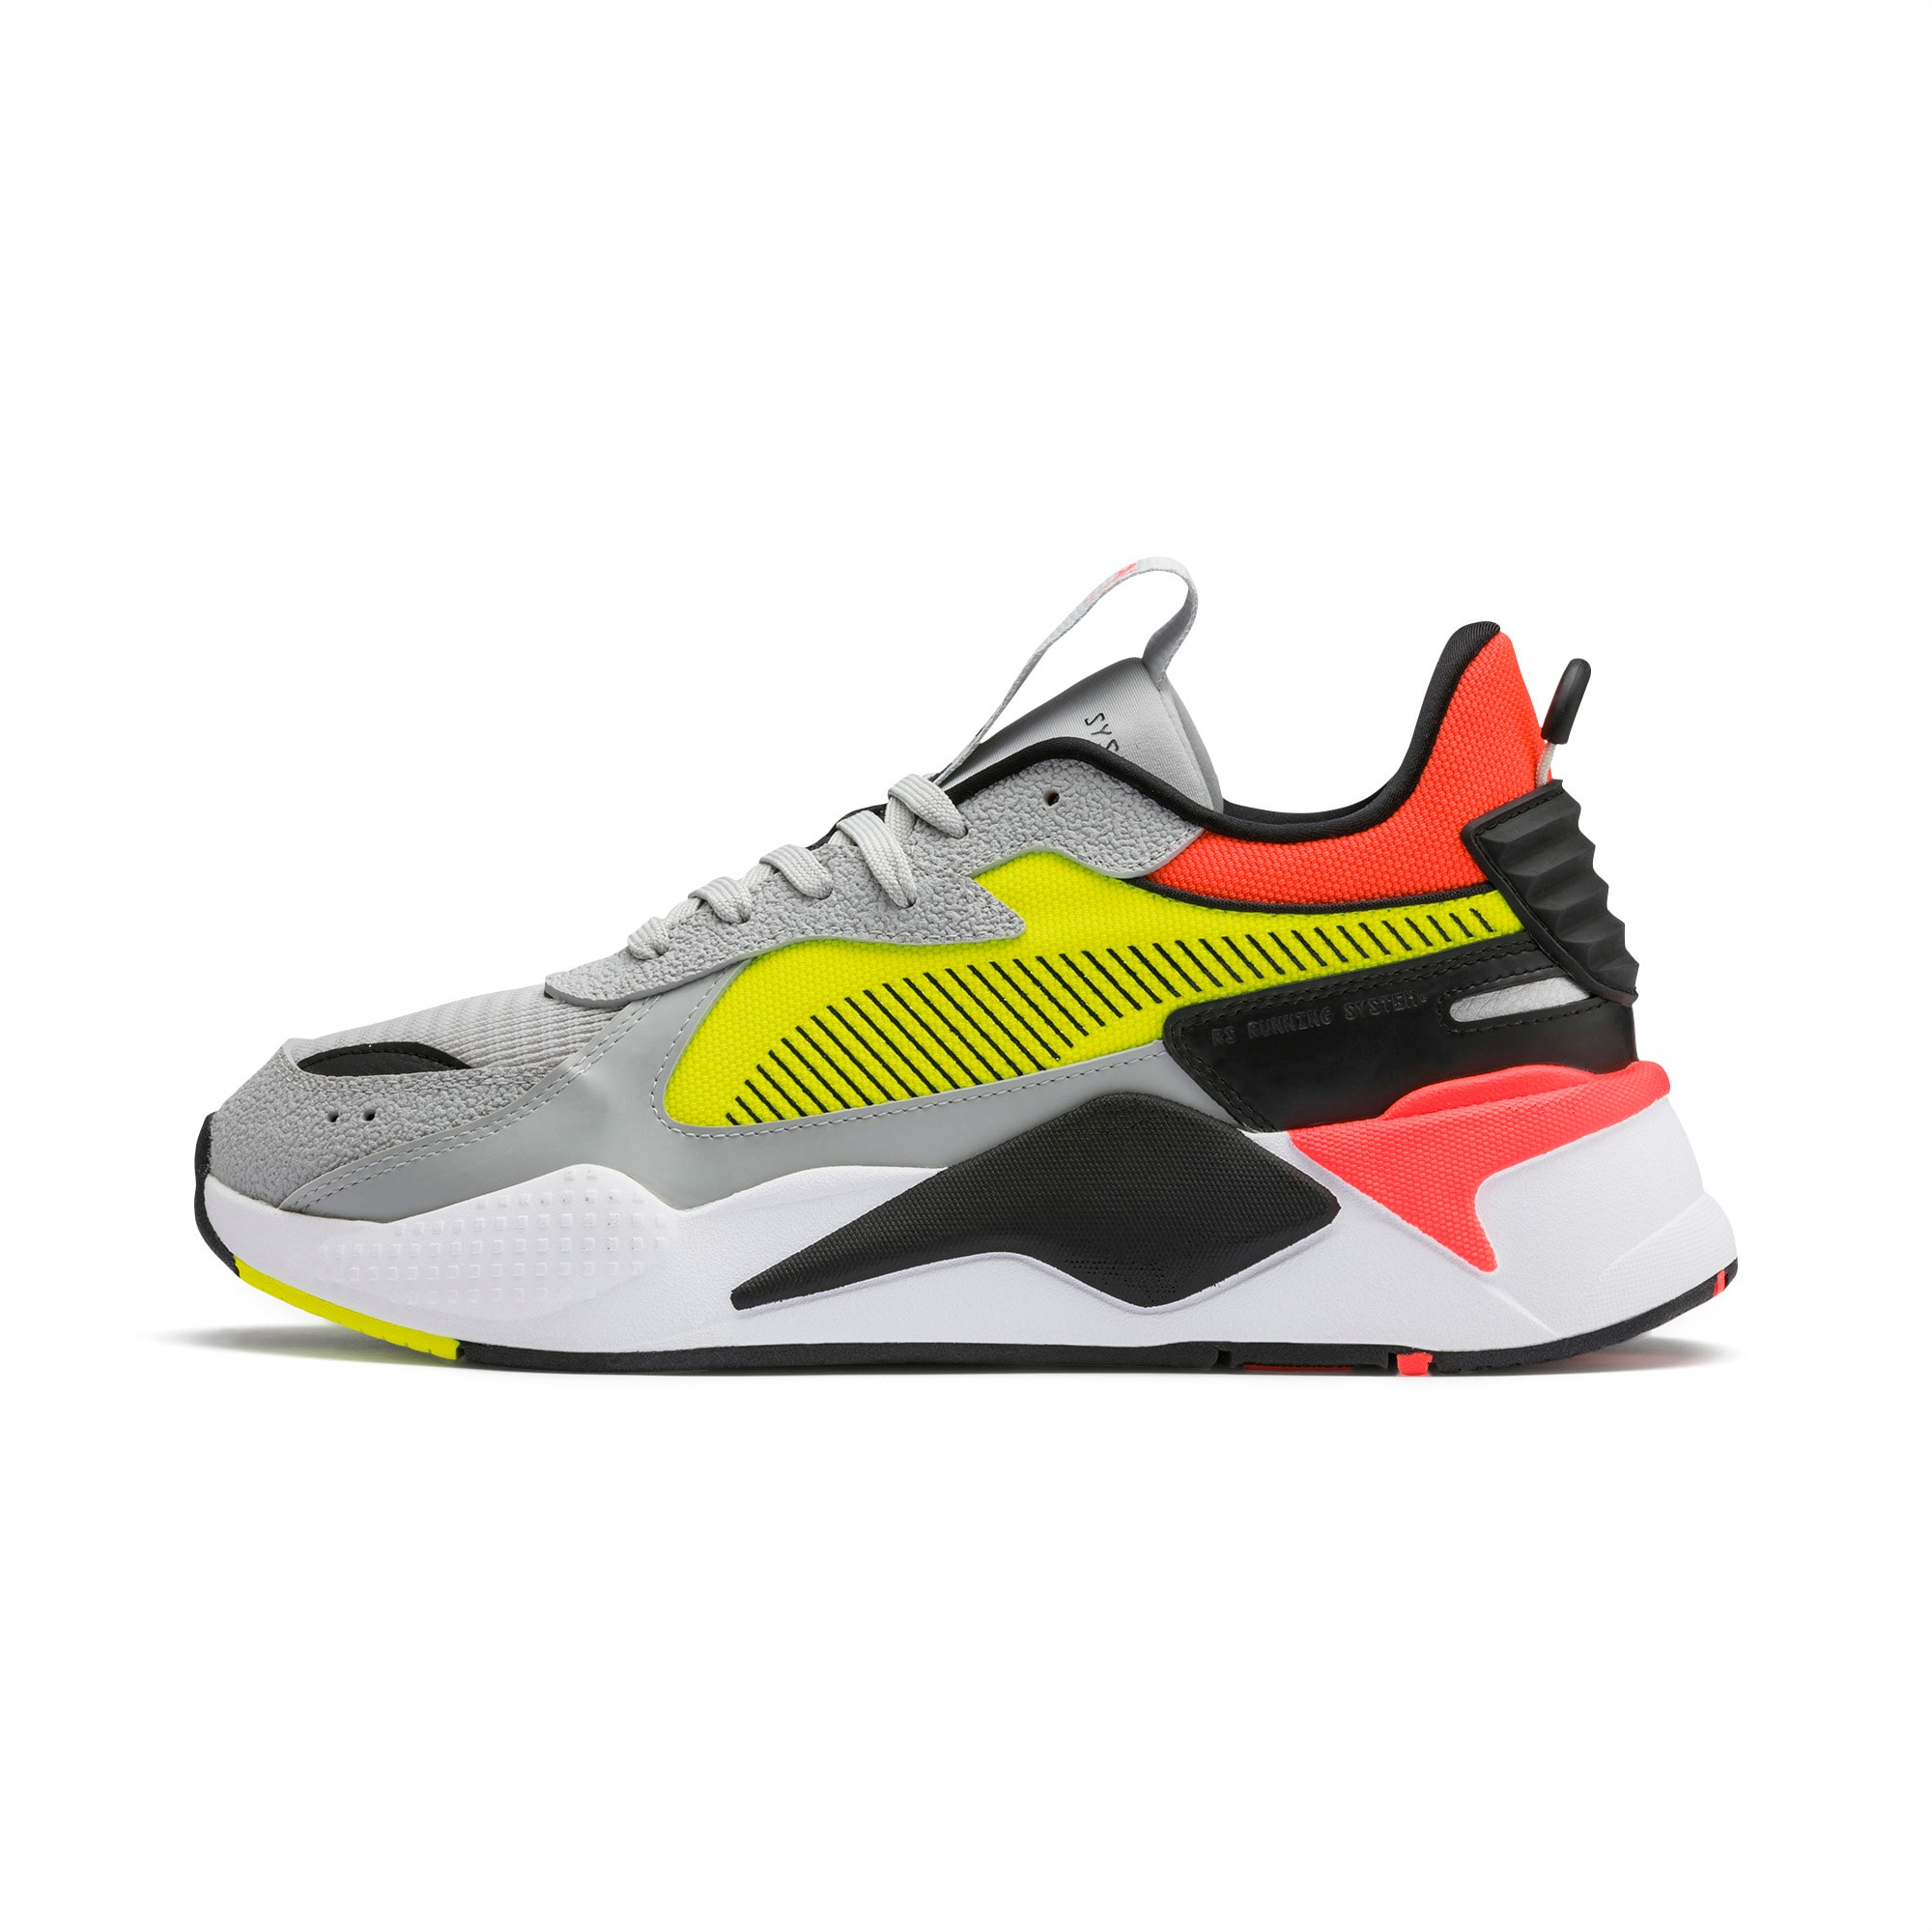 RS-X Hard Drive Men's Sneakers